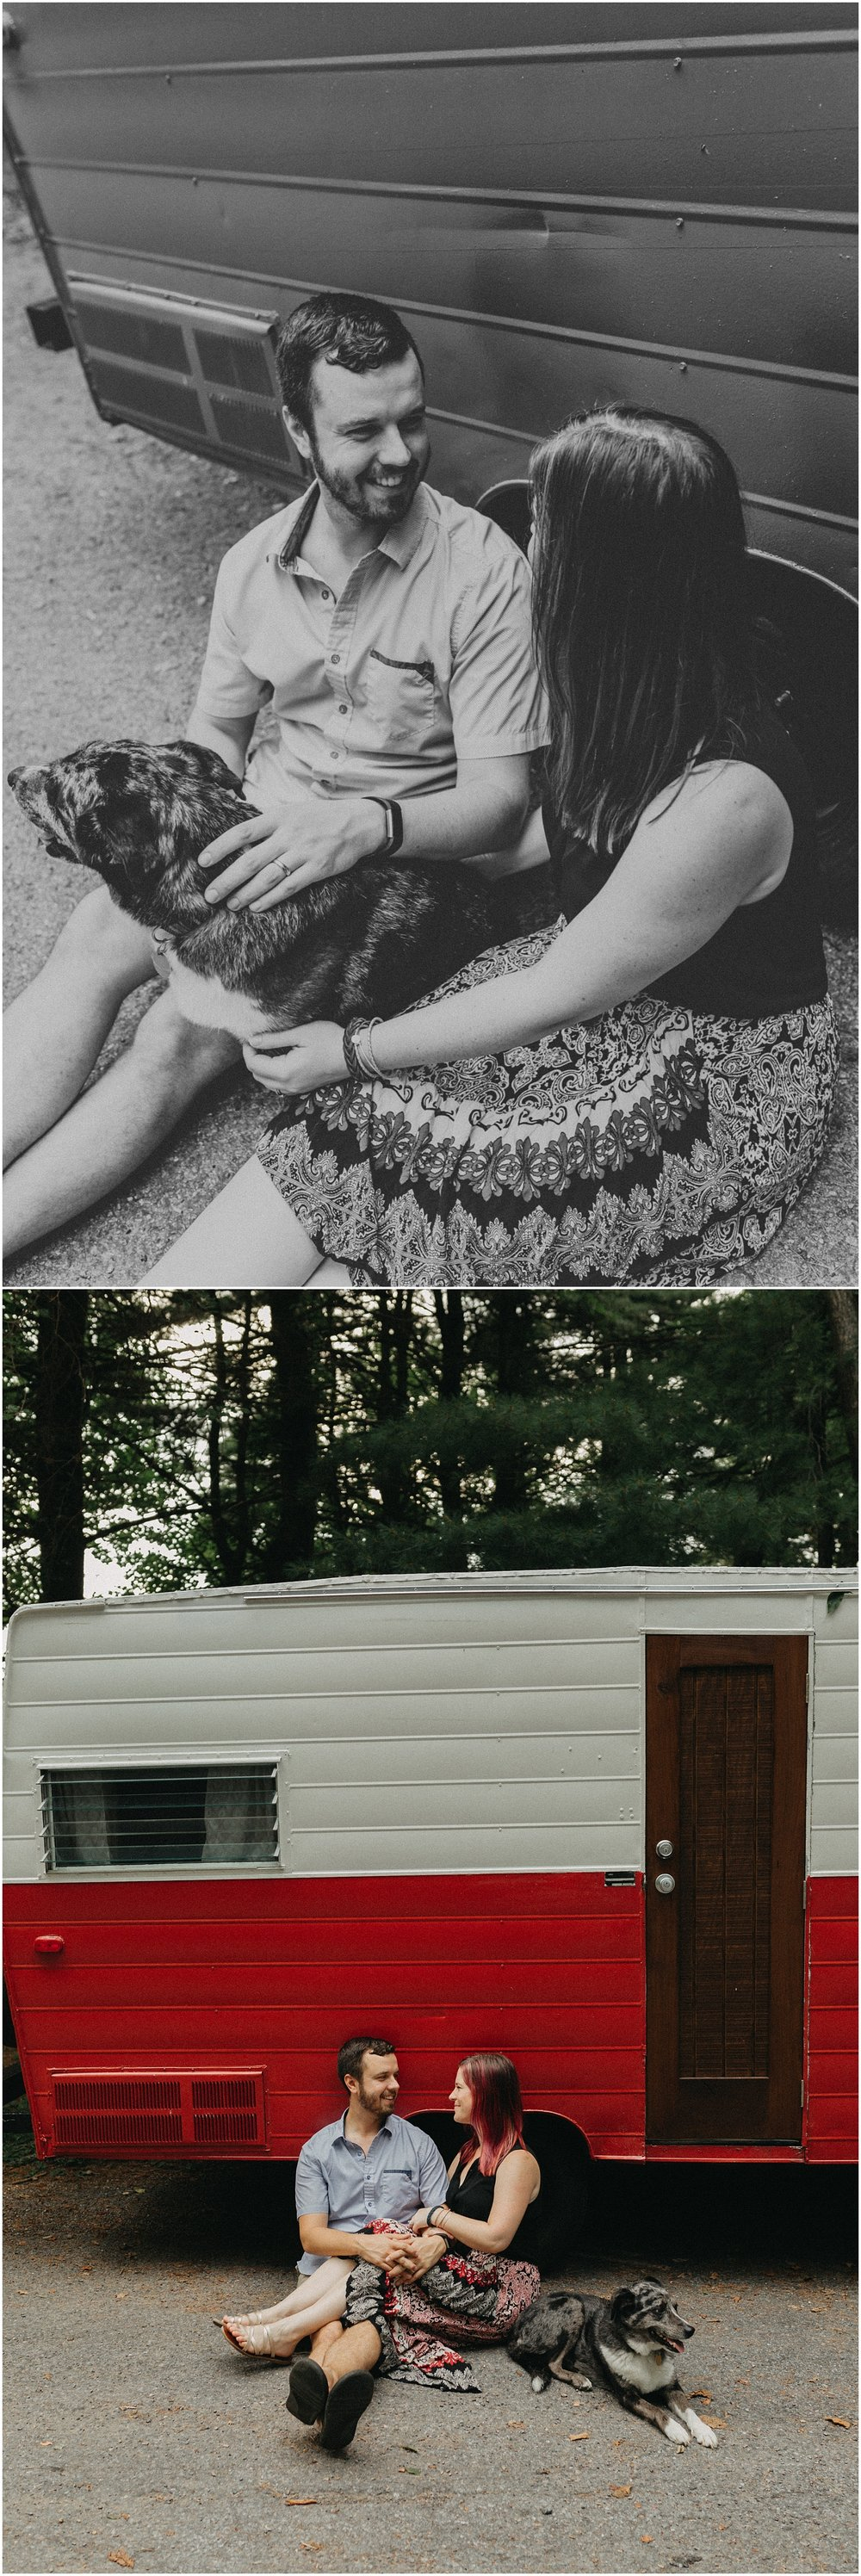 lifestyle-anniversary-engagement-photo session-rv-camping-road trip-vintage trailer-camping-outdoor photos_0238.jpg